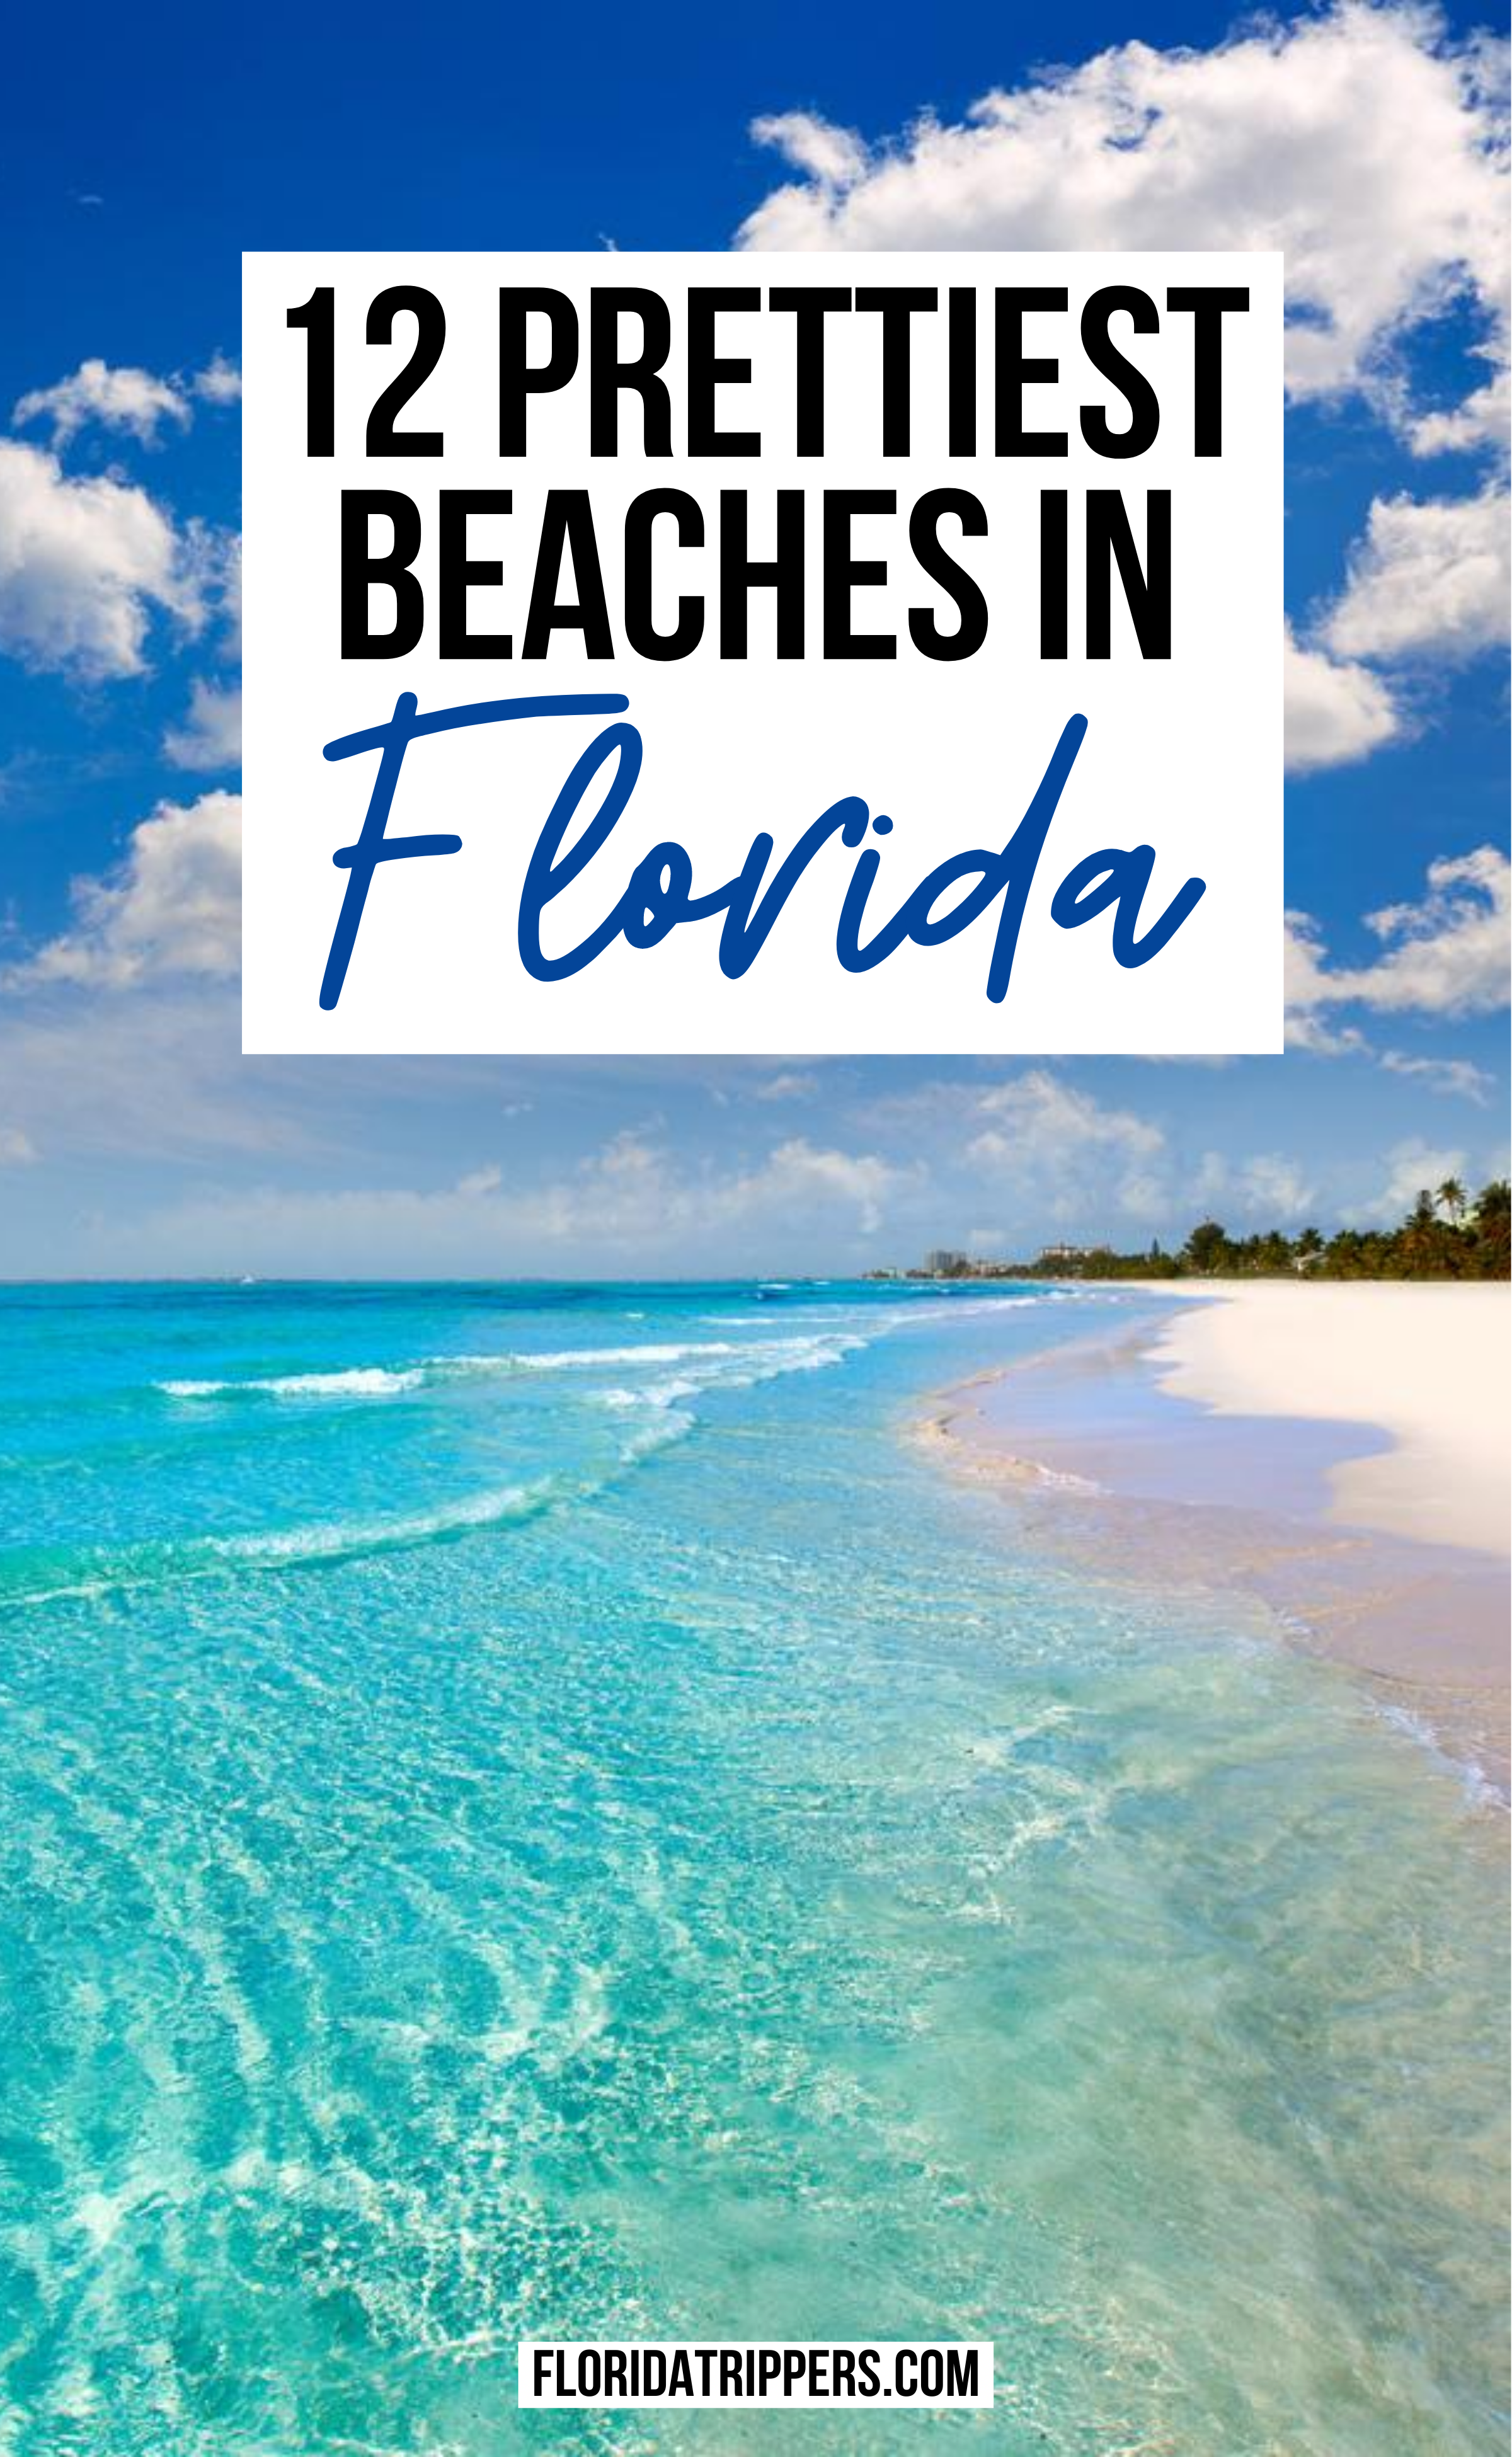 50 Most Beautiful Places In Florida To Add To Your 2021 Bucket List In 2021 Places In Florida Most Beautiful Places Beautiful Places